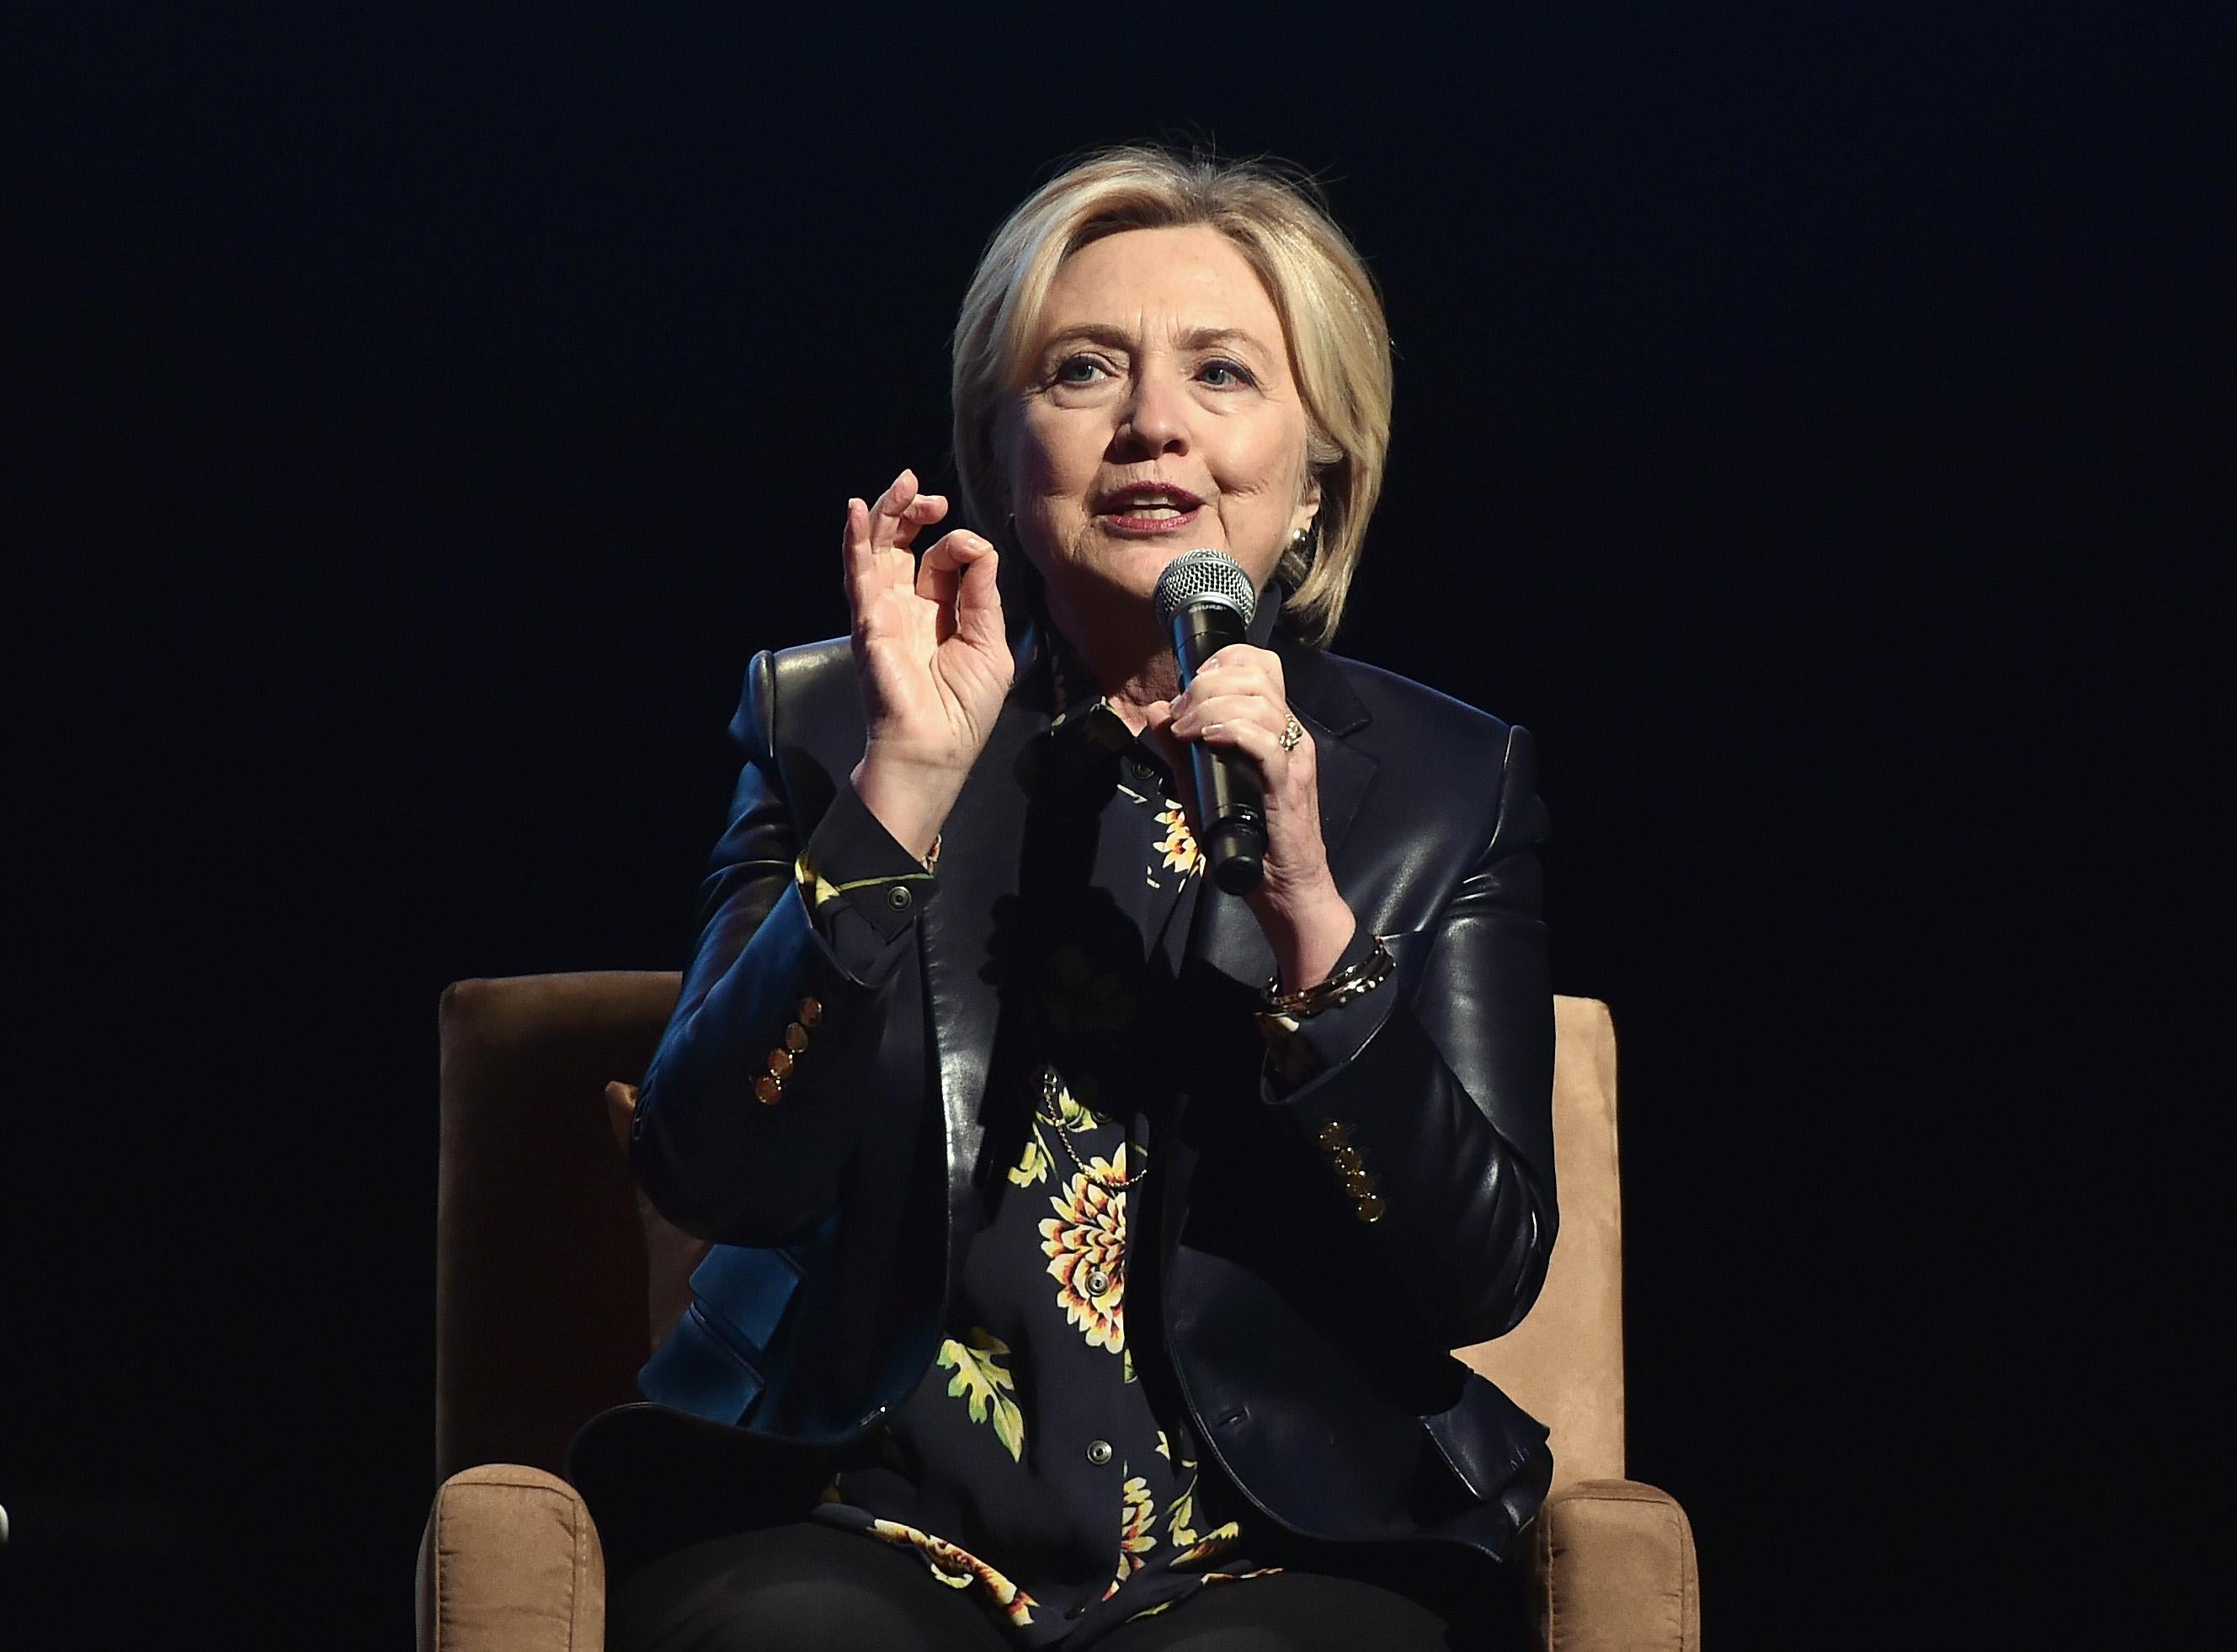 Hillary Clinton speaks onstage at LA Promise Fund's 'Girls Build Leadership Summit' at Los Angeles Convention Center on December 15, 2017 in Los Angeles, California.  (Photo by Alberto E. Rodriguez/Getty Images)